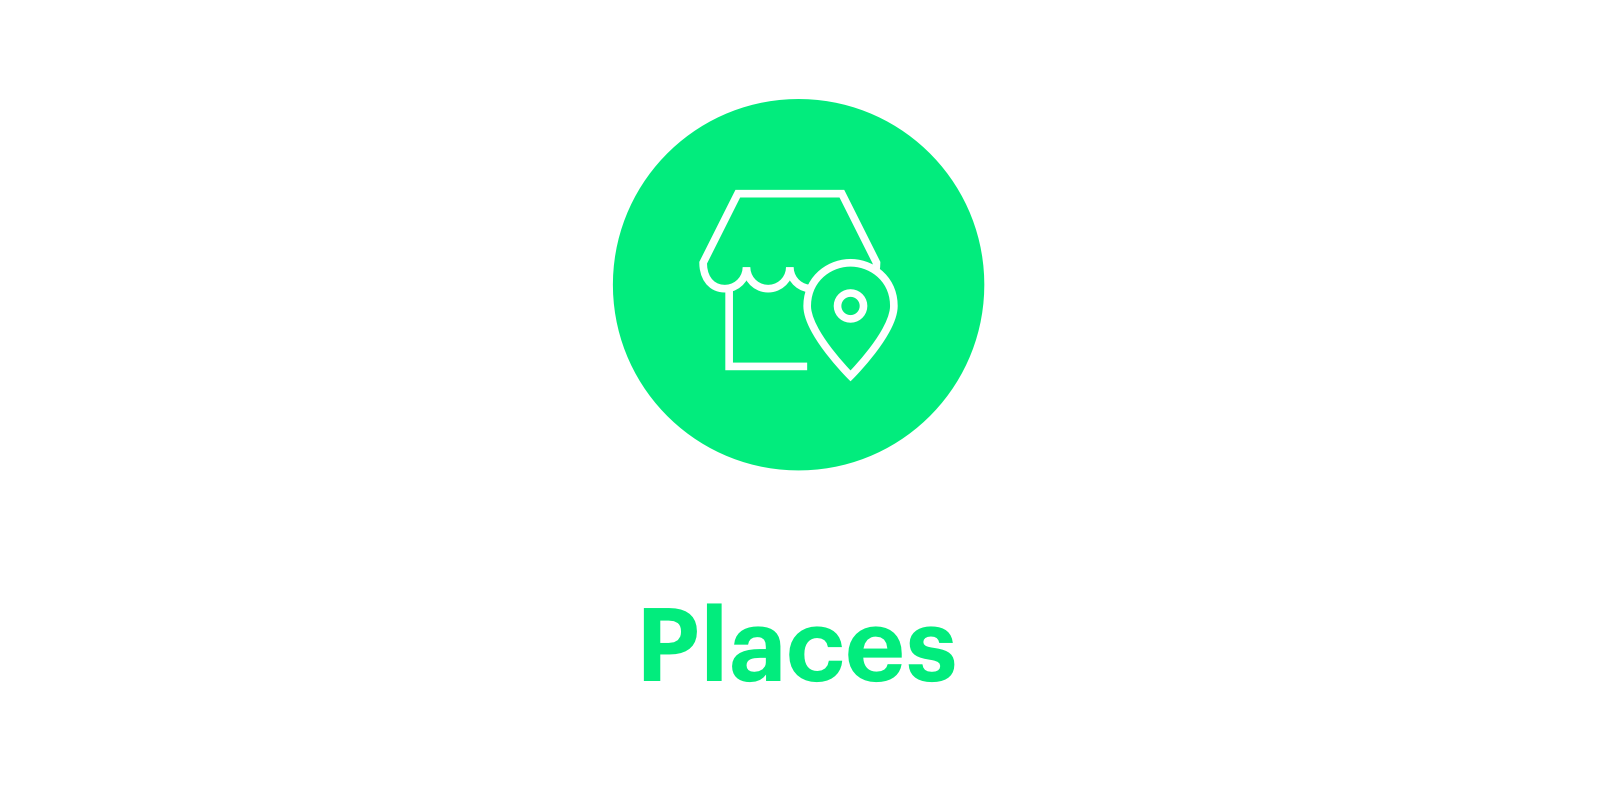 https://s3.amazonaws.com/io.radar.blog/posts/introducing-places-powered-by-facebook-6117e8f200f/places.png